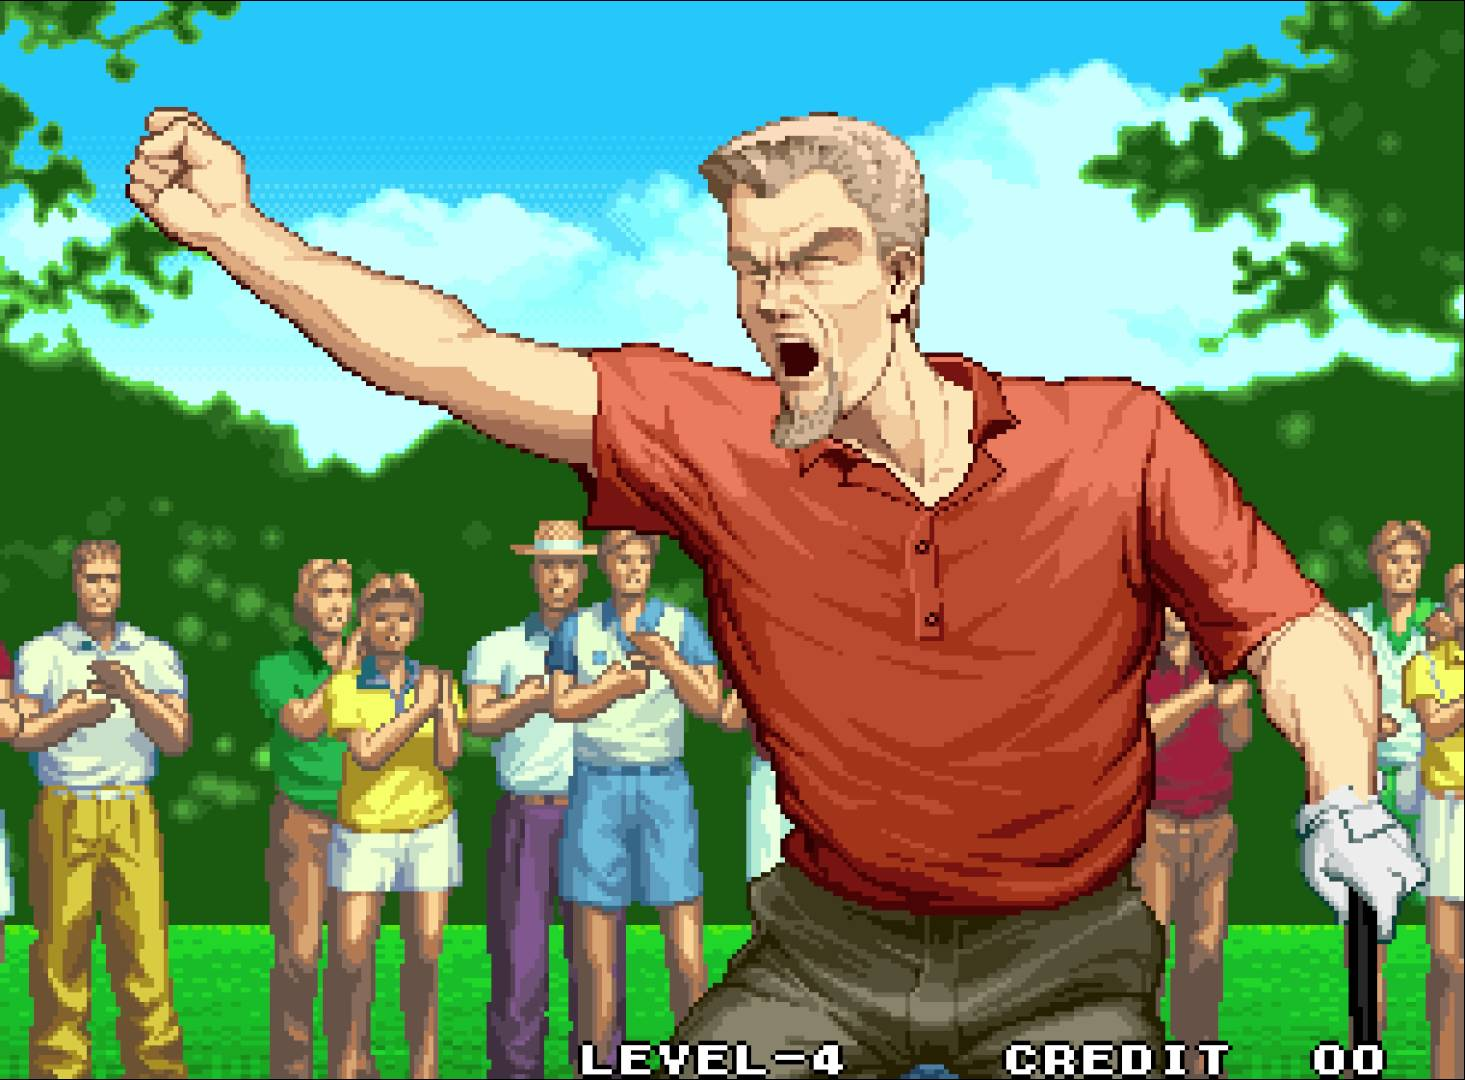 Neo Turf Masters, SNK's classic golf game, is getting ported to mobile on June 30th